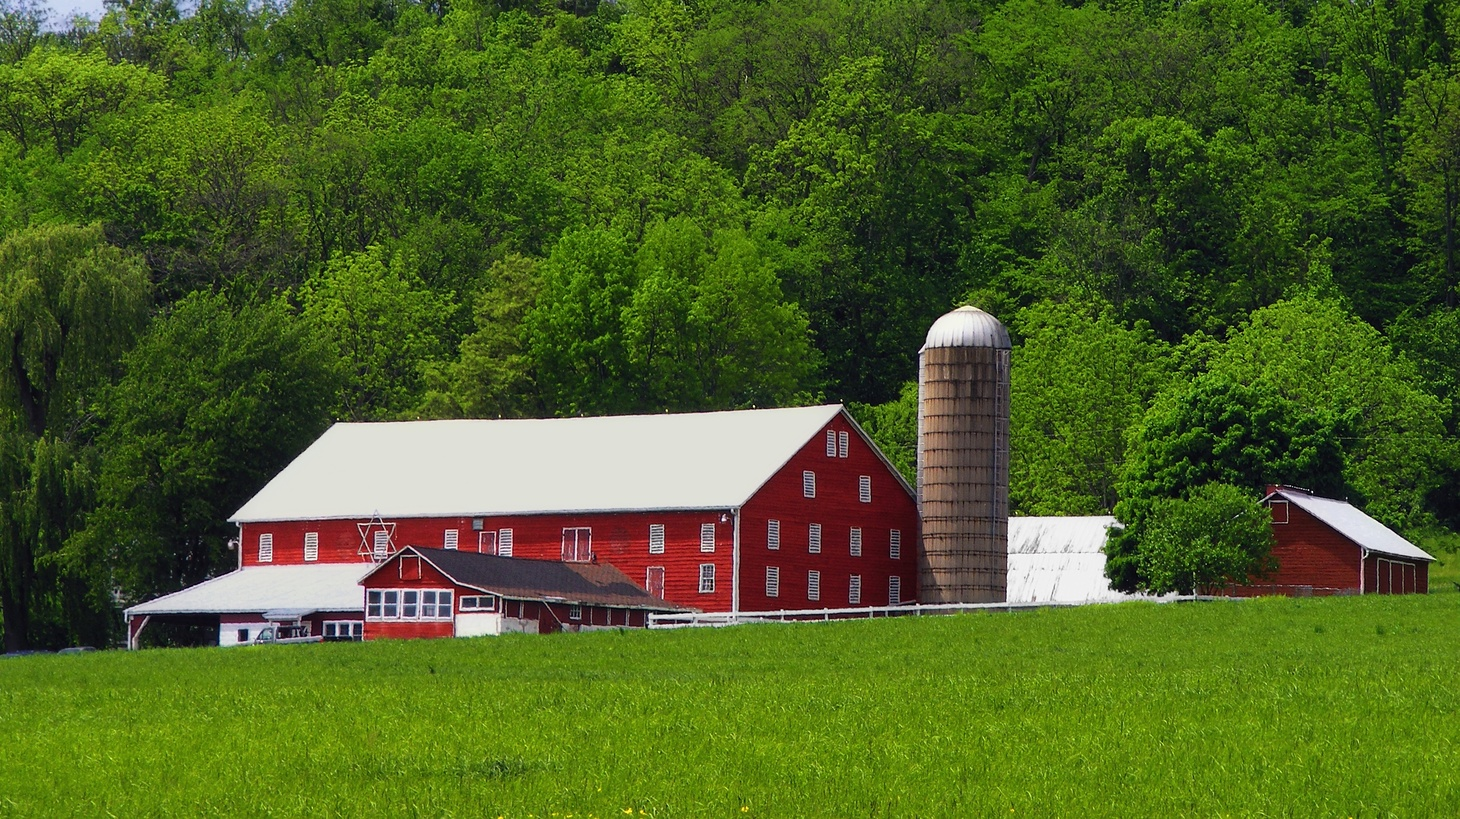 A farmstead in Adams Township, Snyder County, Pennsylvania.